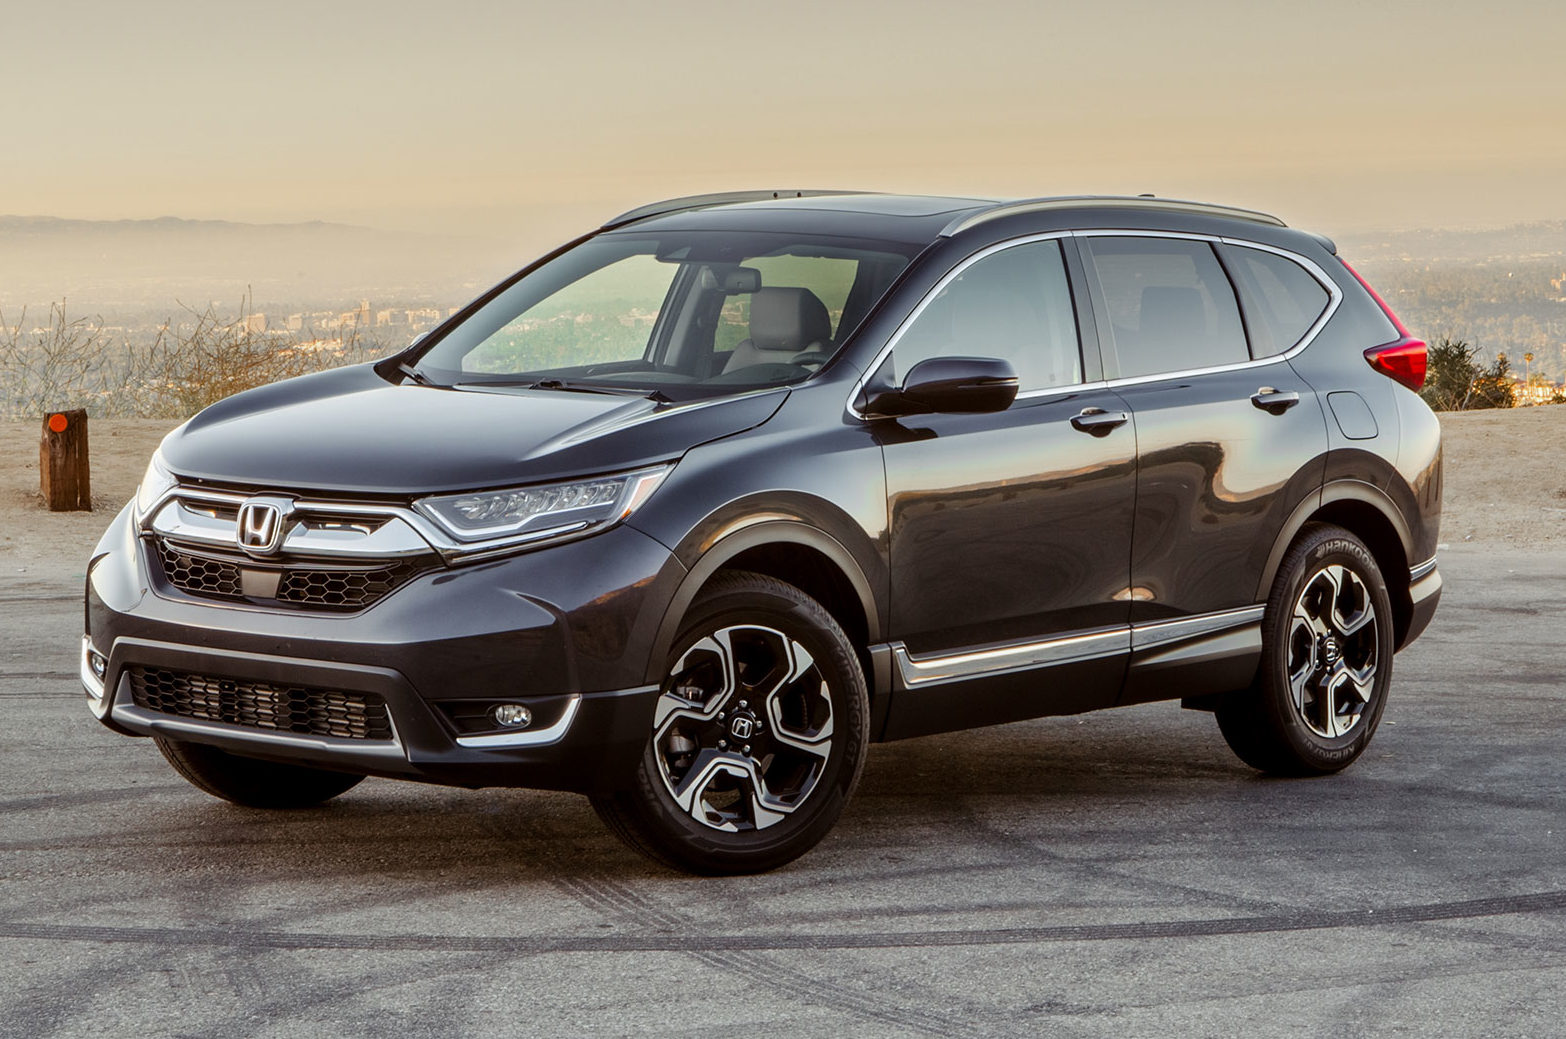 Honda Mrv 2018: 2018 Honda CR-V Price Goes Up Slightly